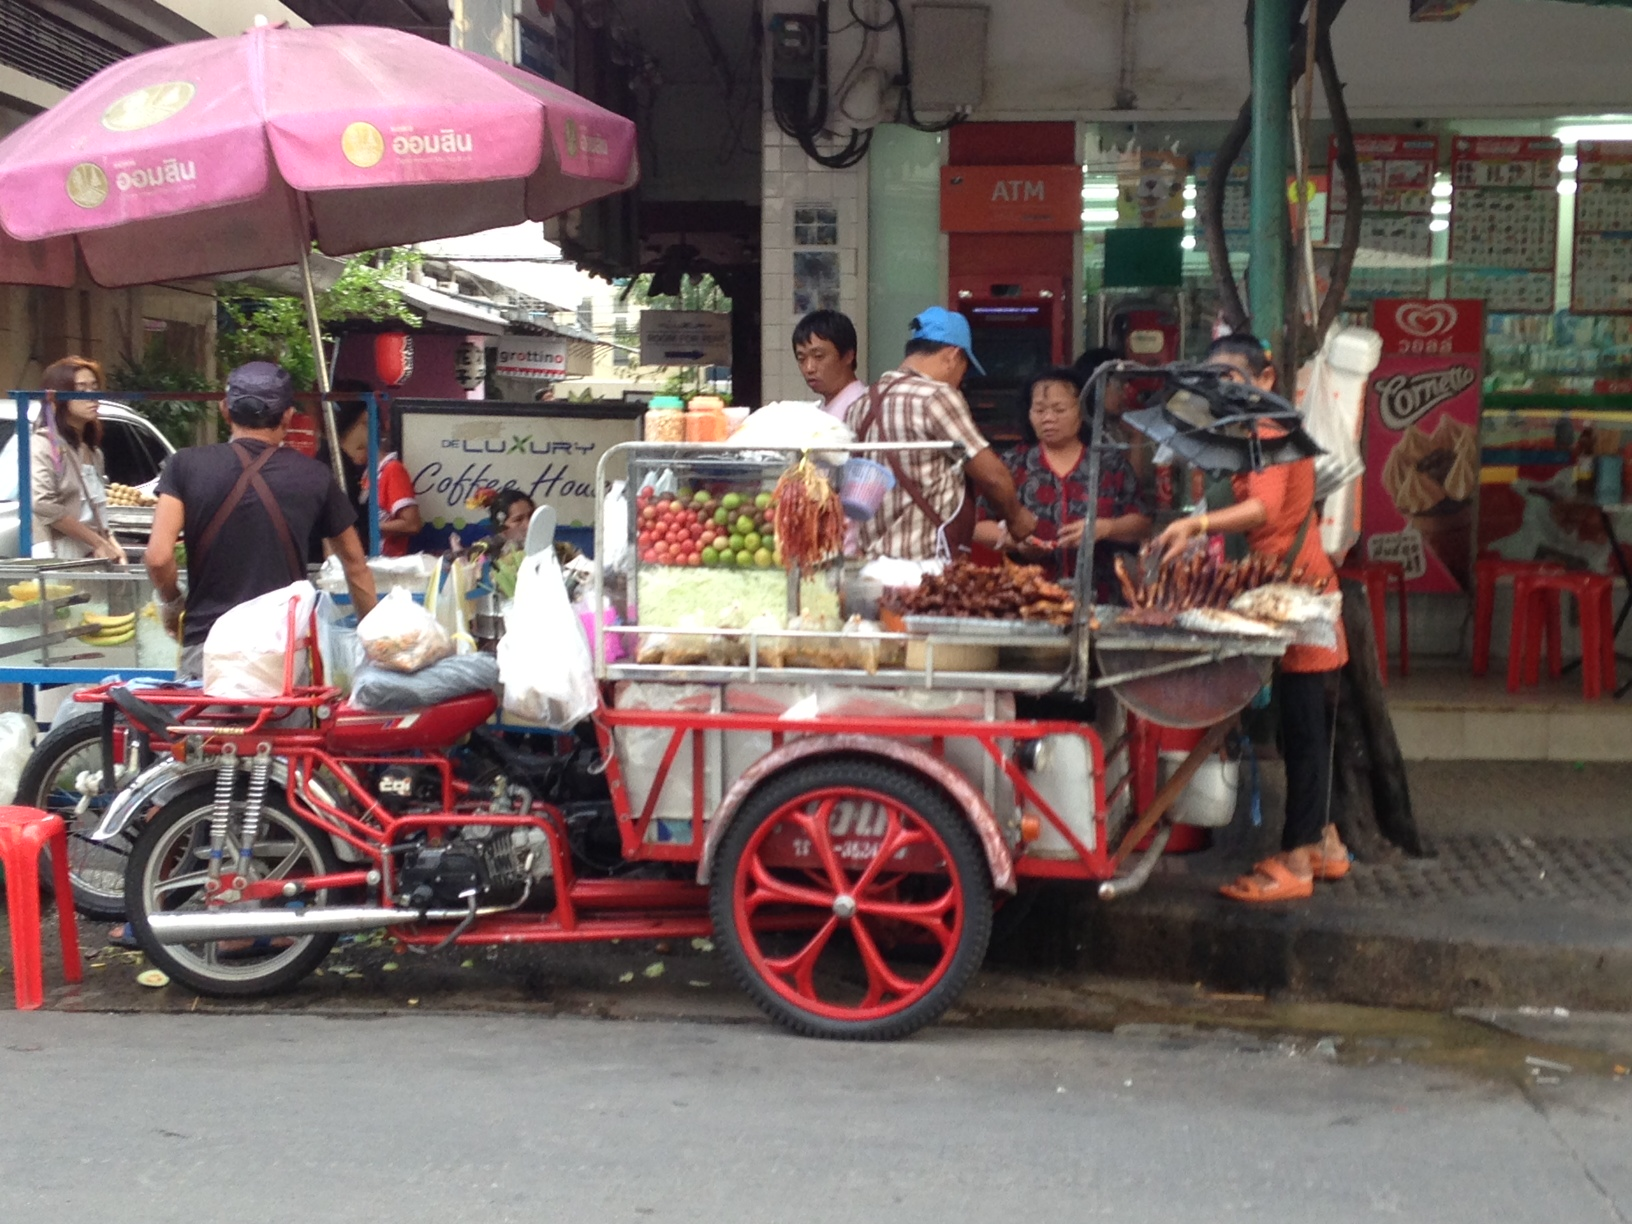 Bangkok Food Cart | Mint Mocha Musings